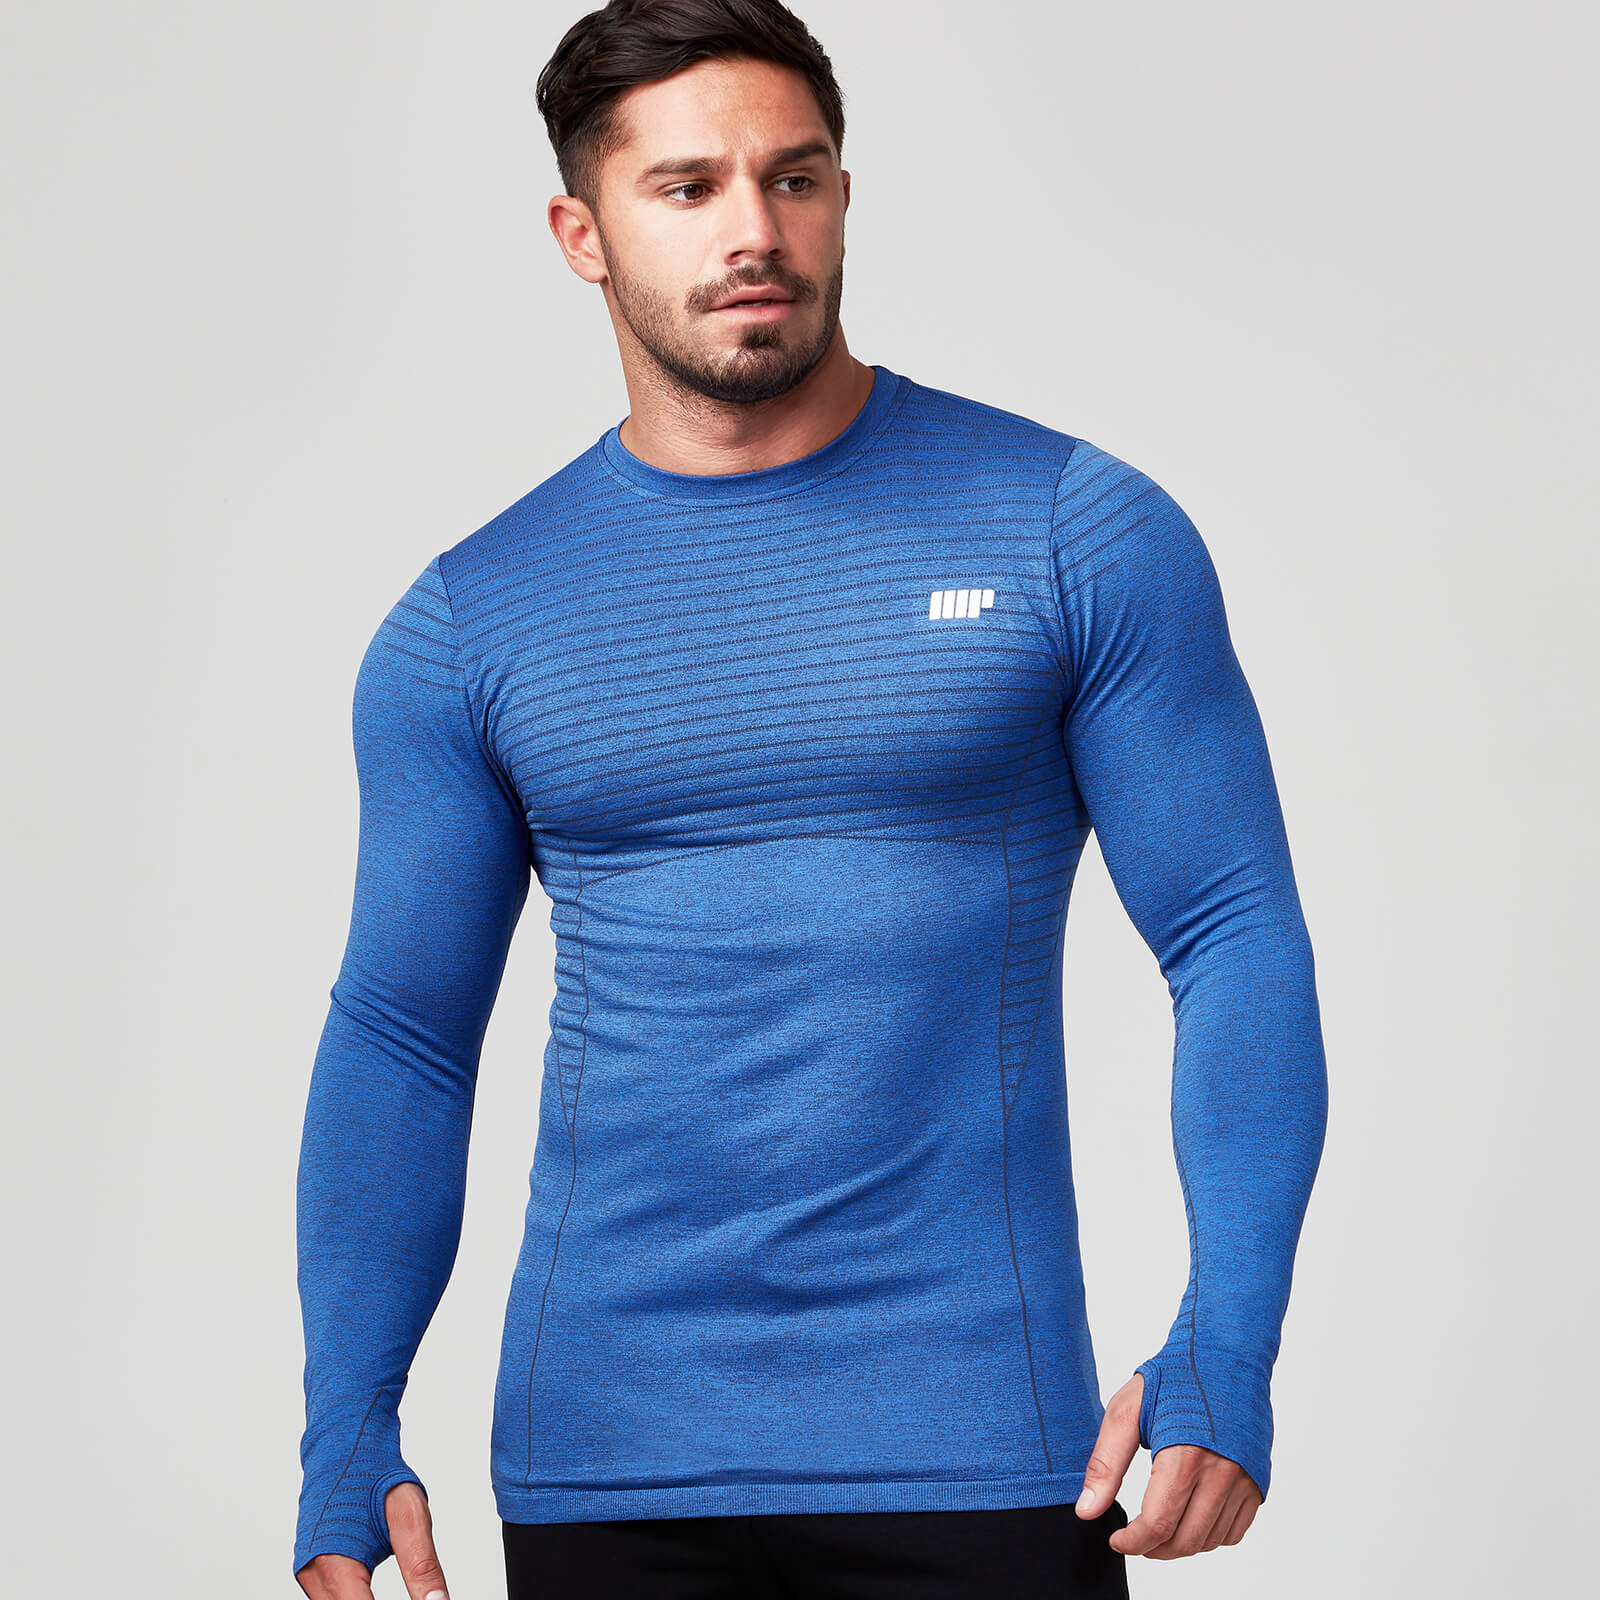 Myprotein Seamless Long Sleeve T-Shirt - Navy - S